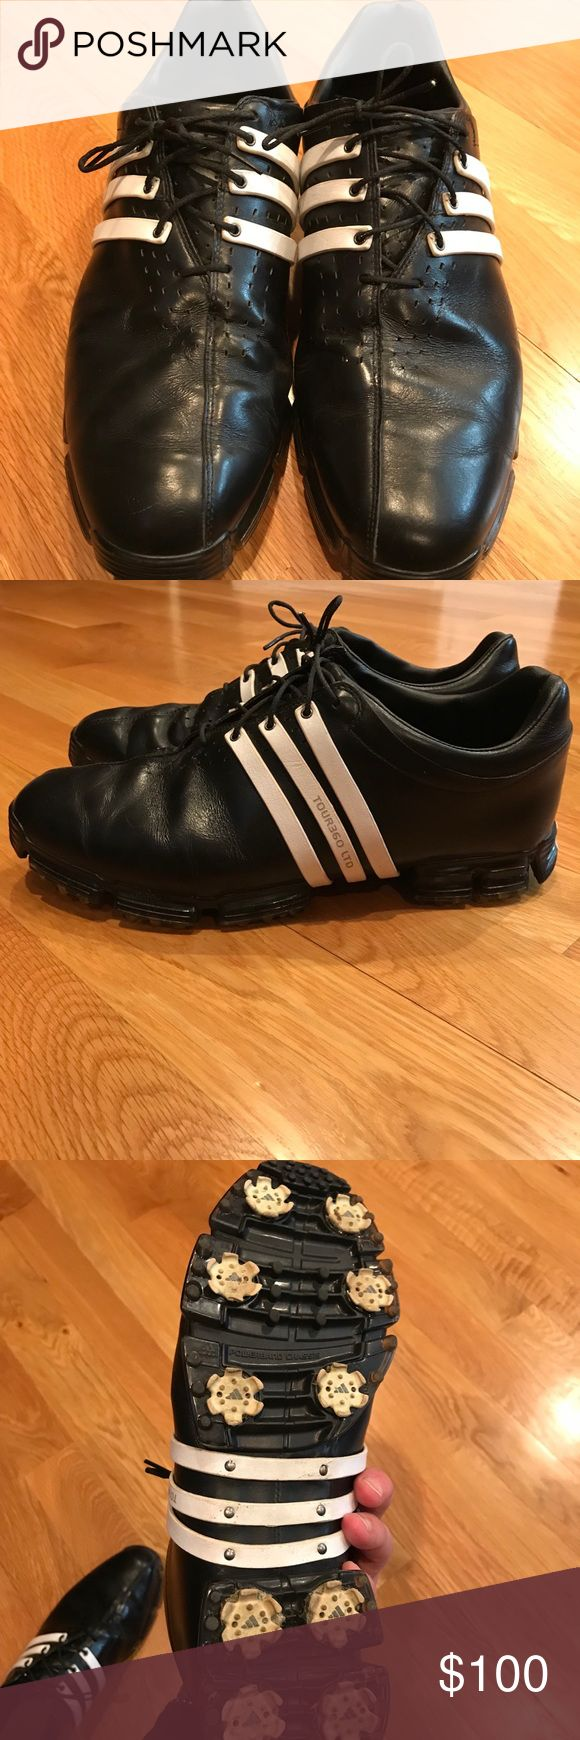 Adidas Black Tour360 LTD Golf Shoes These golf shoes are in great condition and go with any golf attire! Comment if you have any questions! adidas Shoes Athletic Shoes